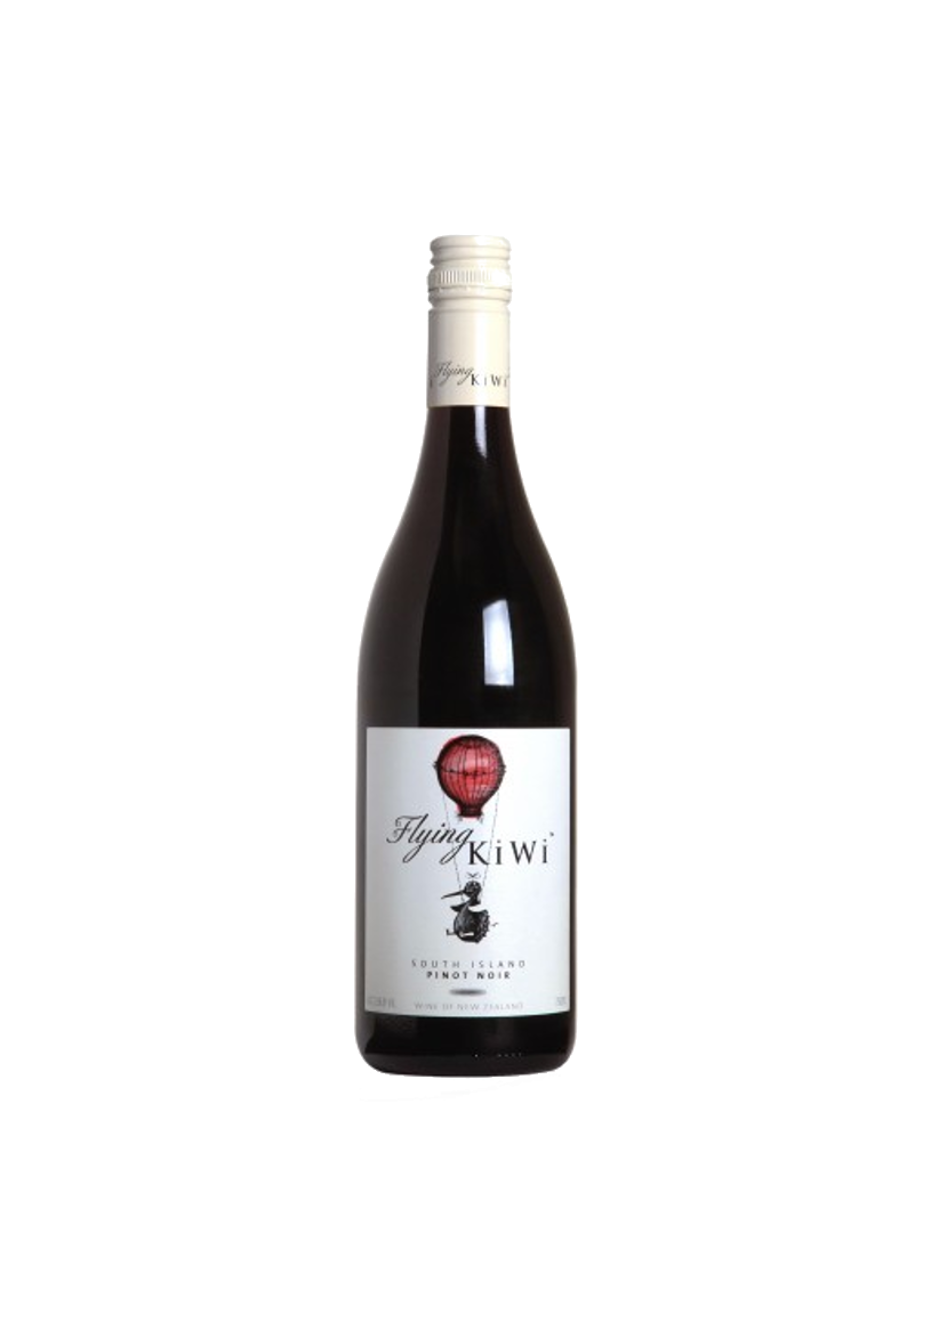 Flying Kiwi Central Otago Pinot Noir 2014